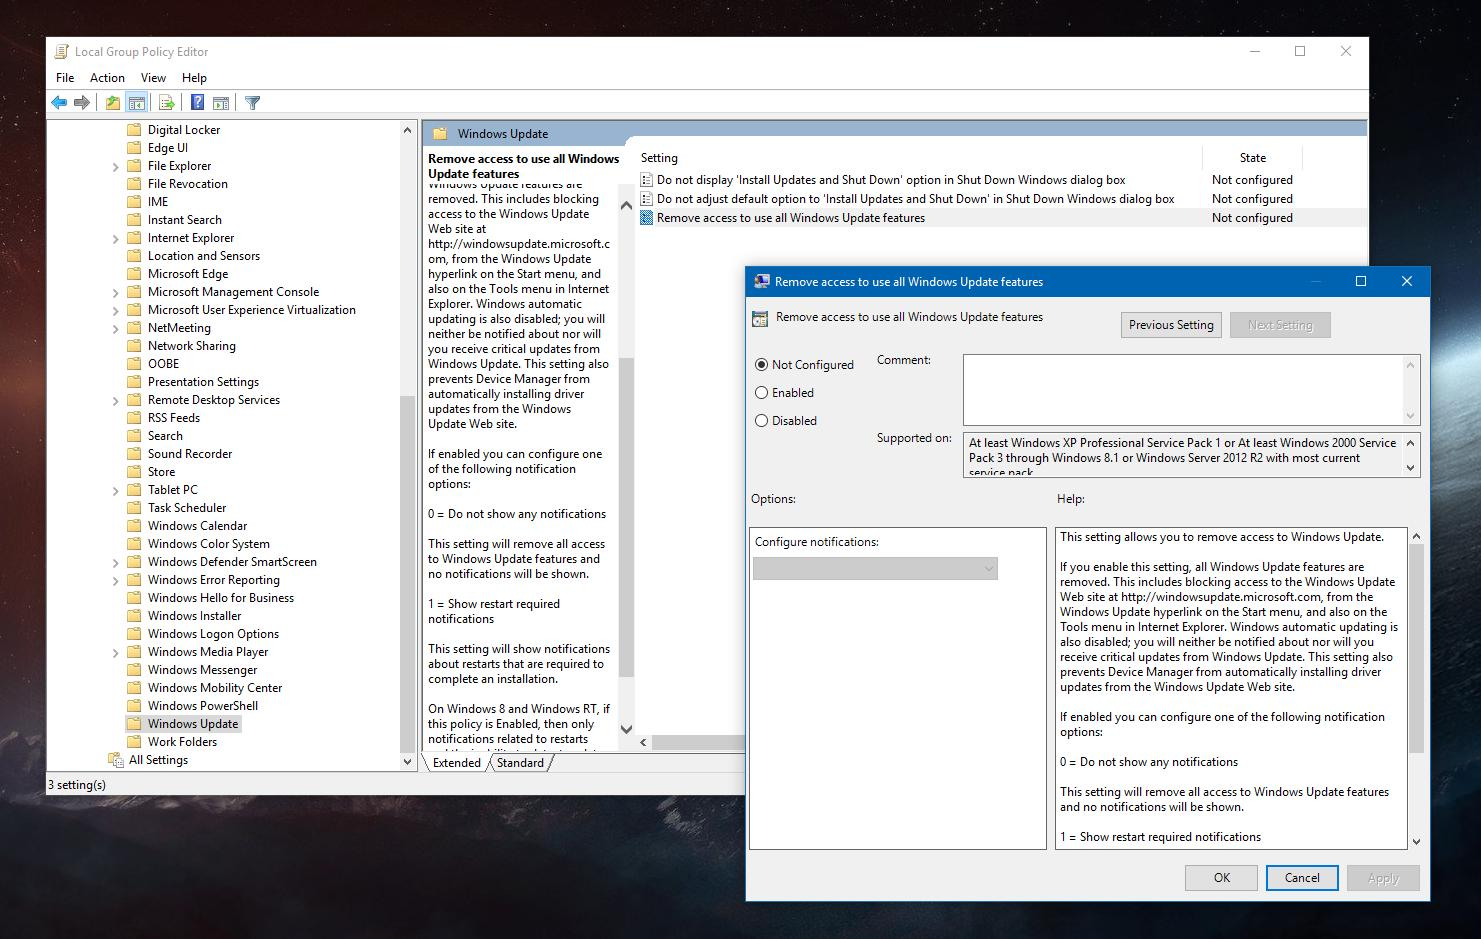 How to Block Access to Windows Update in Windows 10 Version 1809